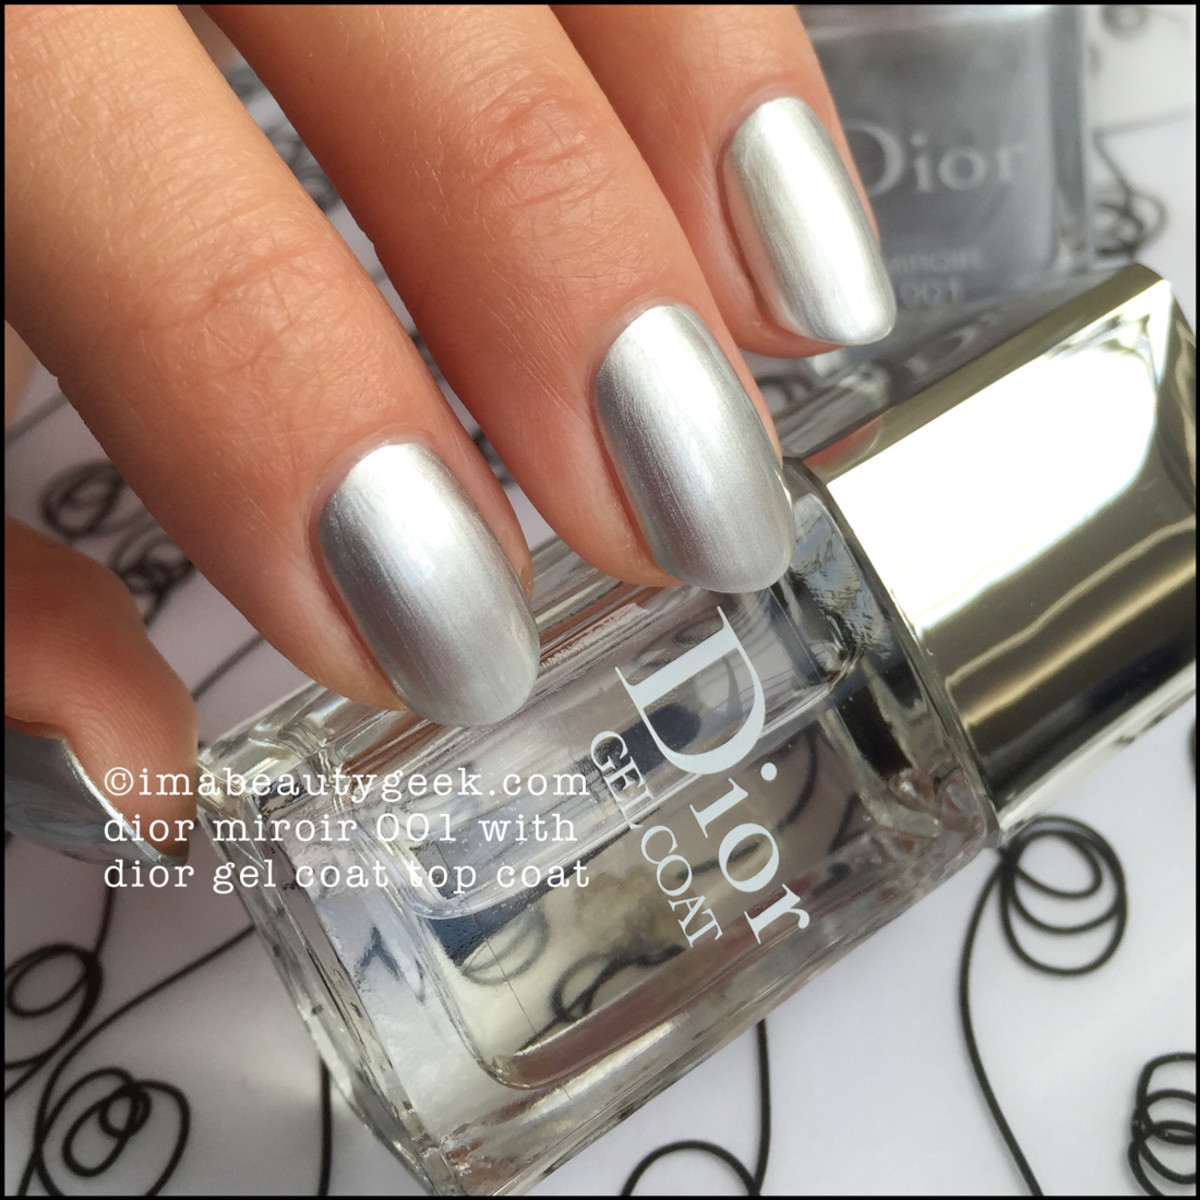 Dior miroir 001 swatches review beautygeeks for Vernis a ongle miroir